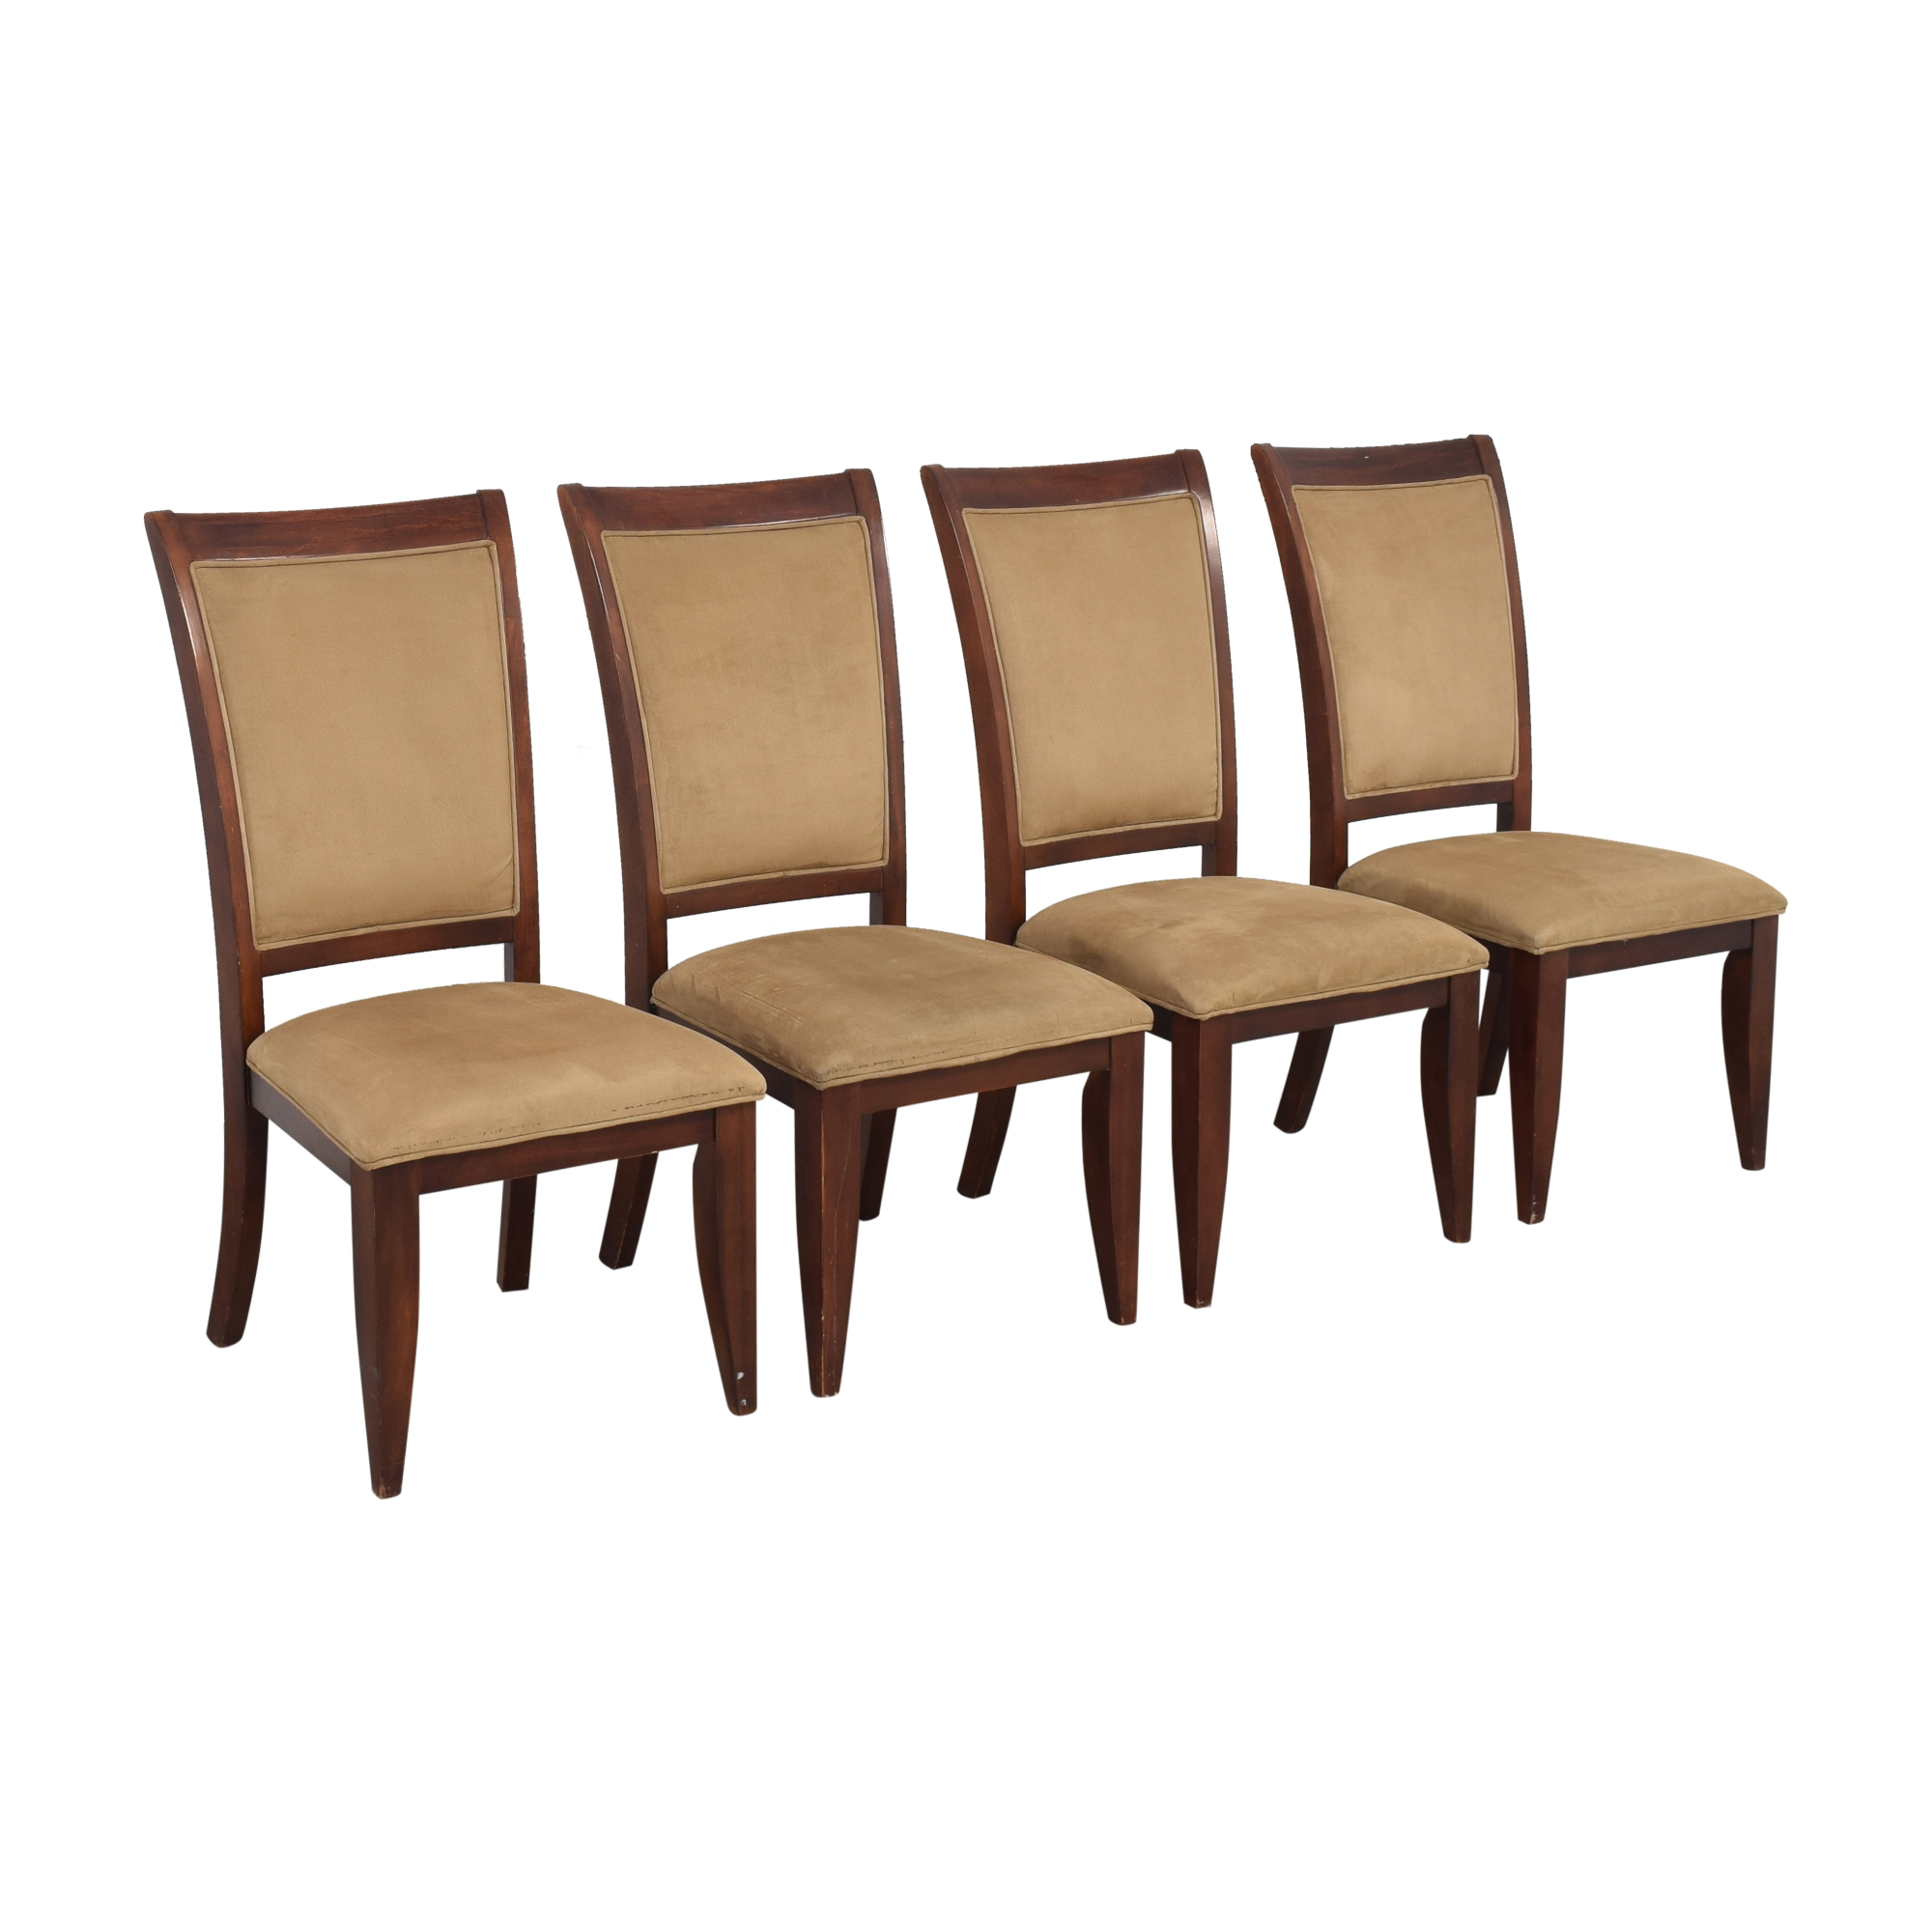 Legacy Classic Furniture Legacy Classic Upholstered Dining Chairs pa